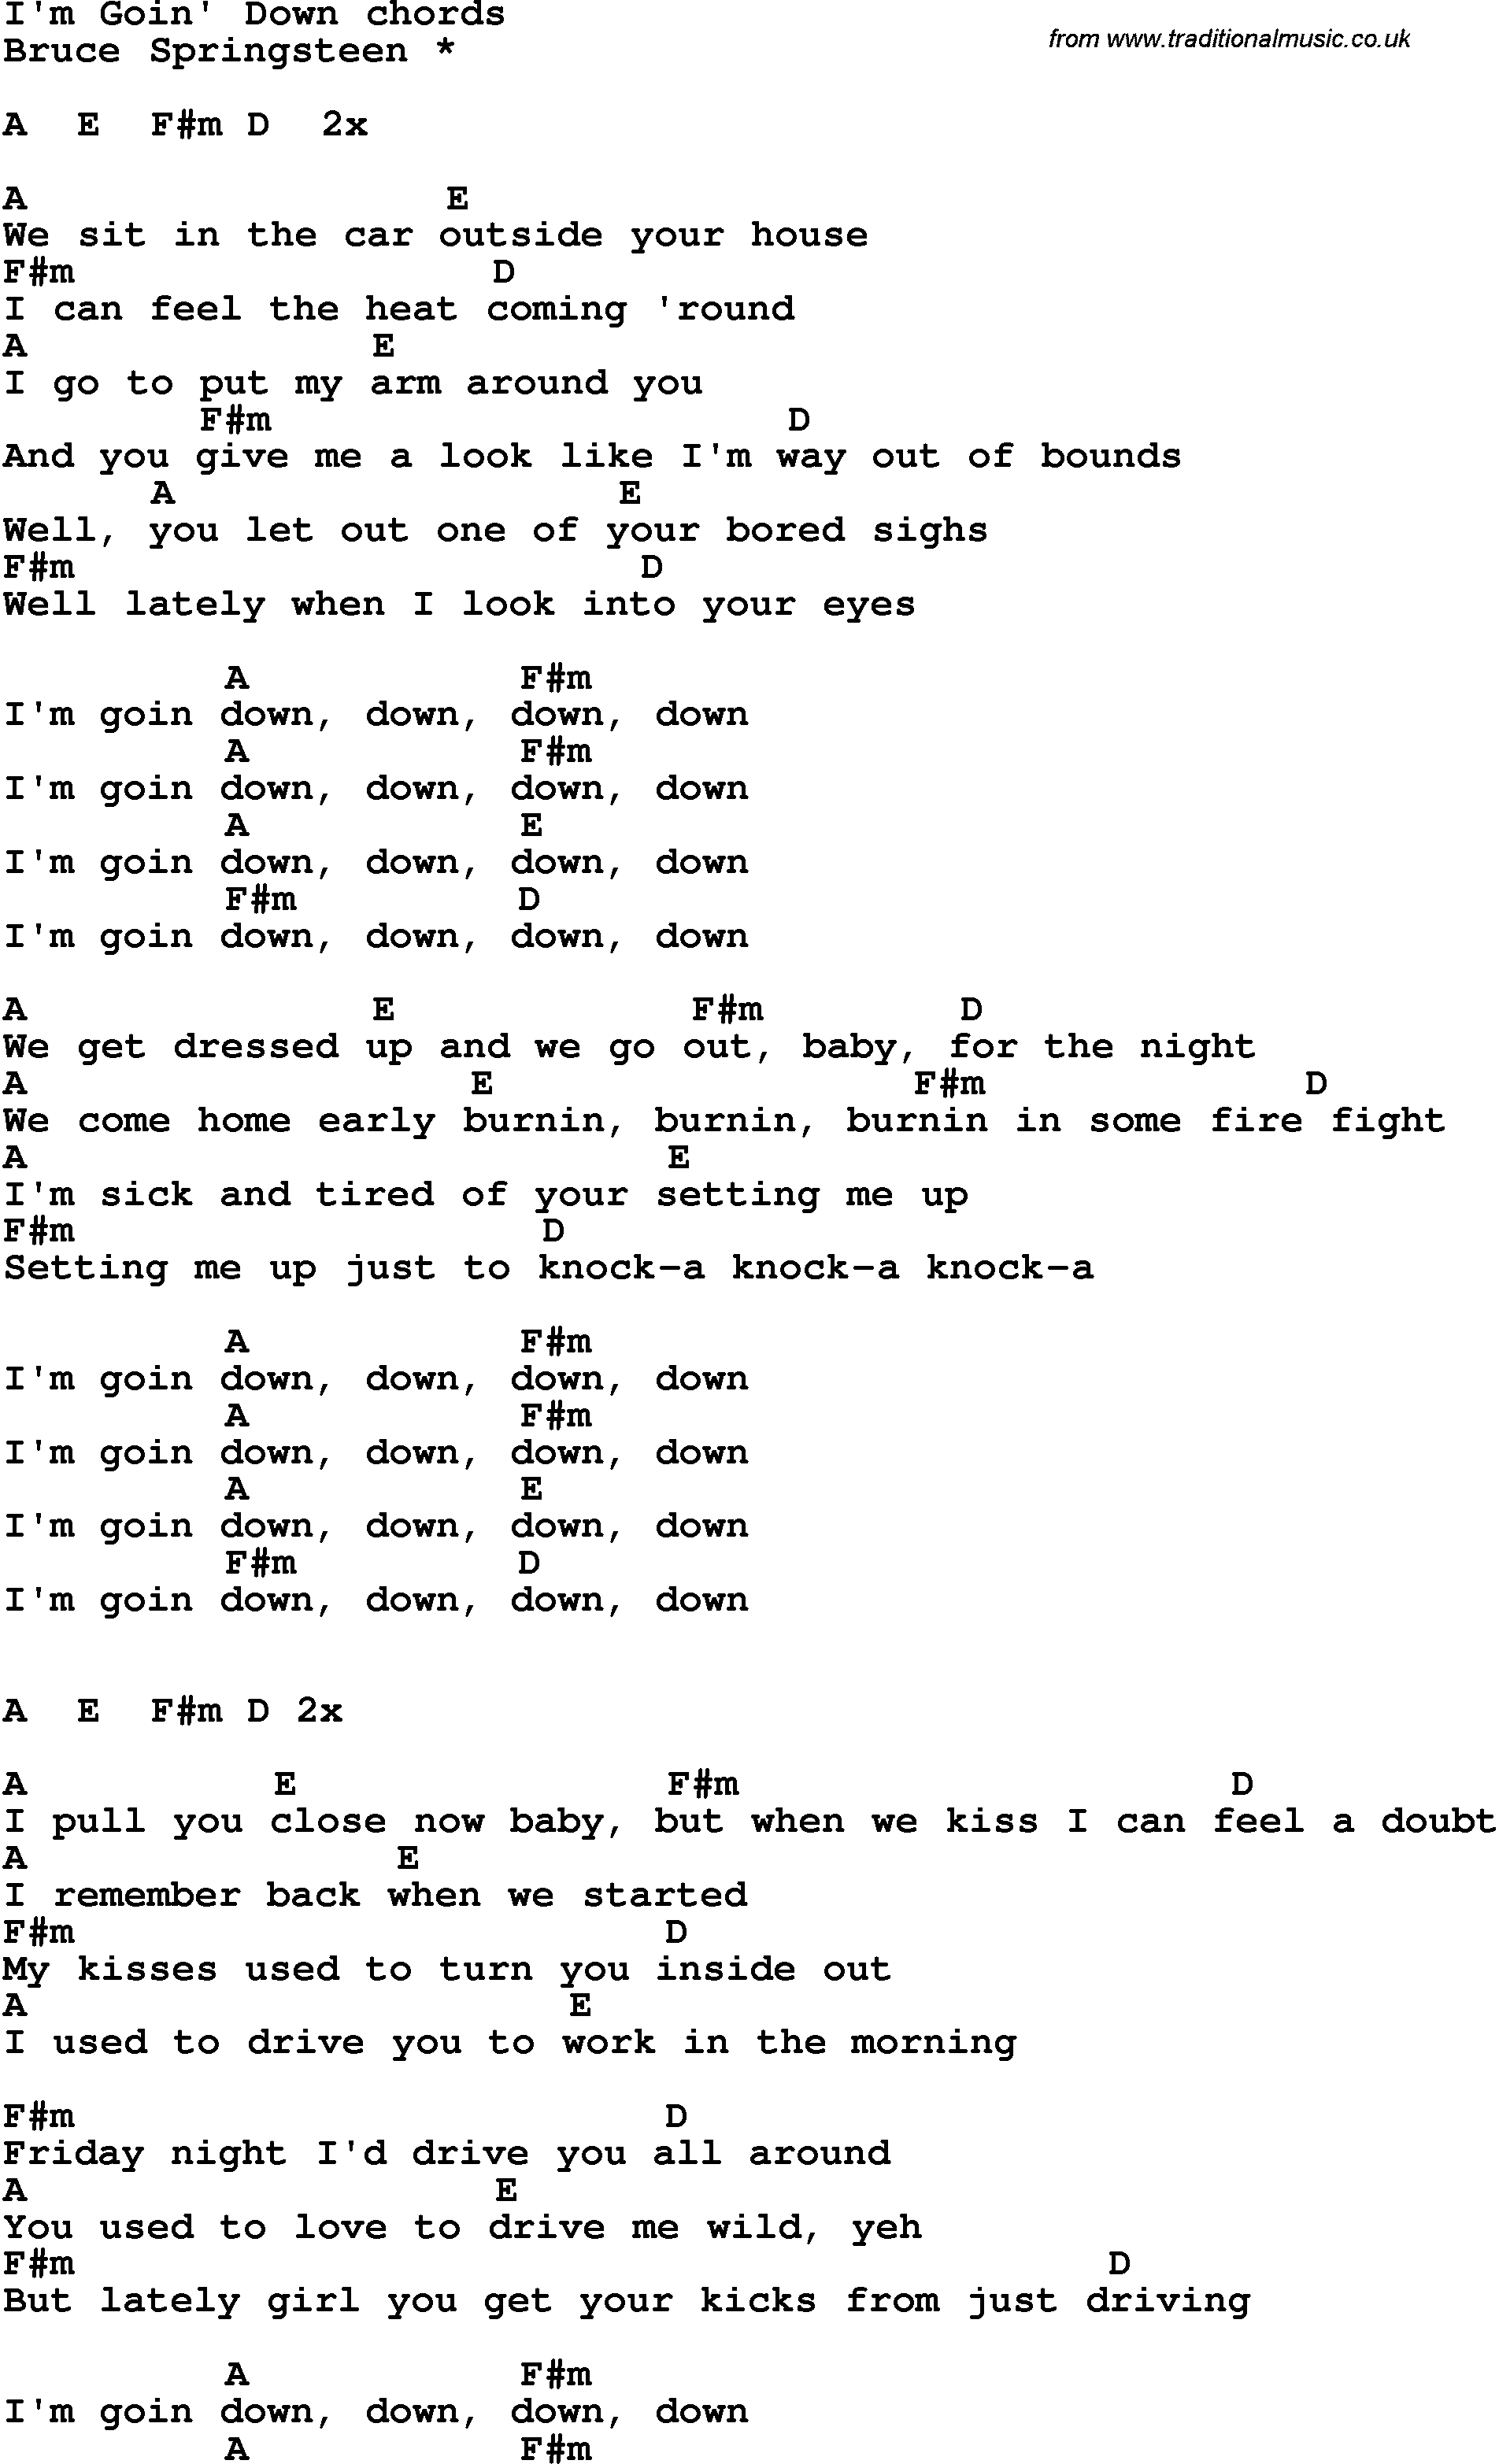 From The Inside Out Chords Song Lyrics With Guitar Chords For Im Goin Down